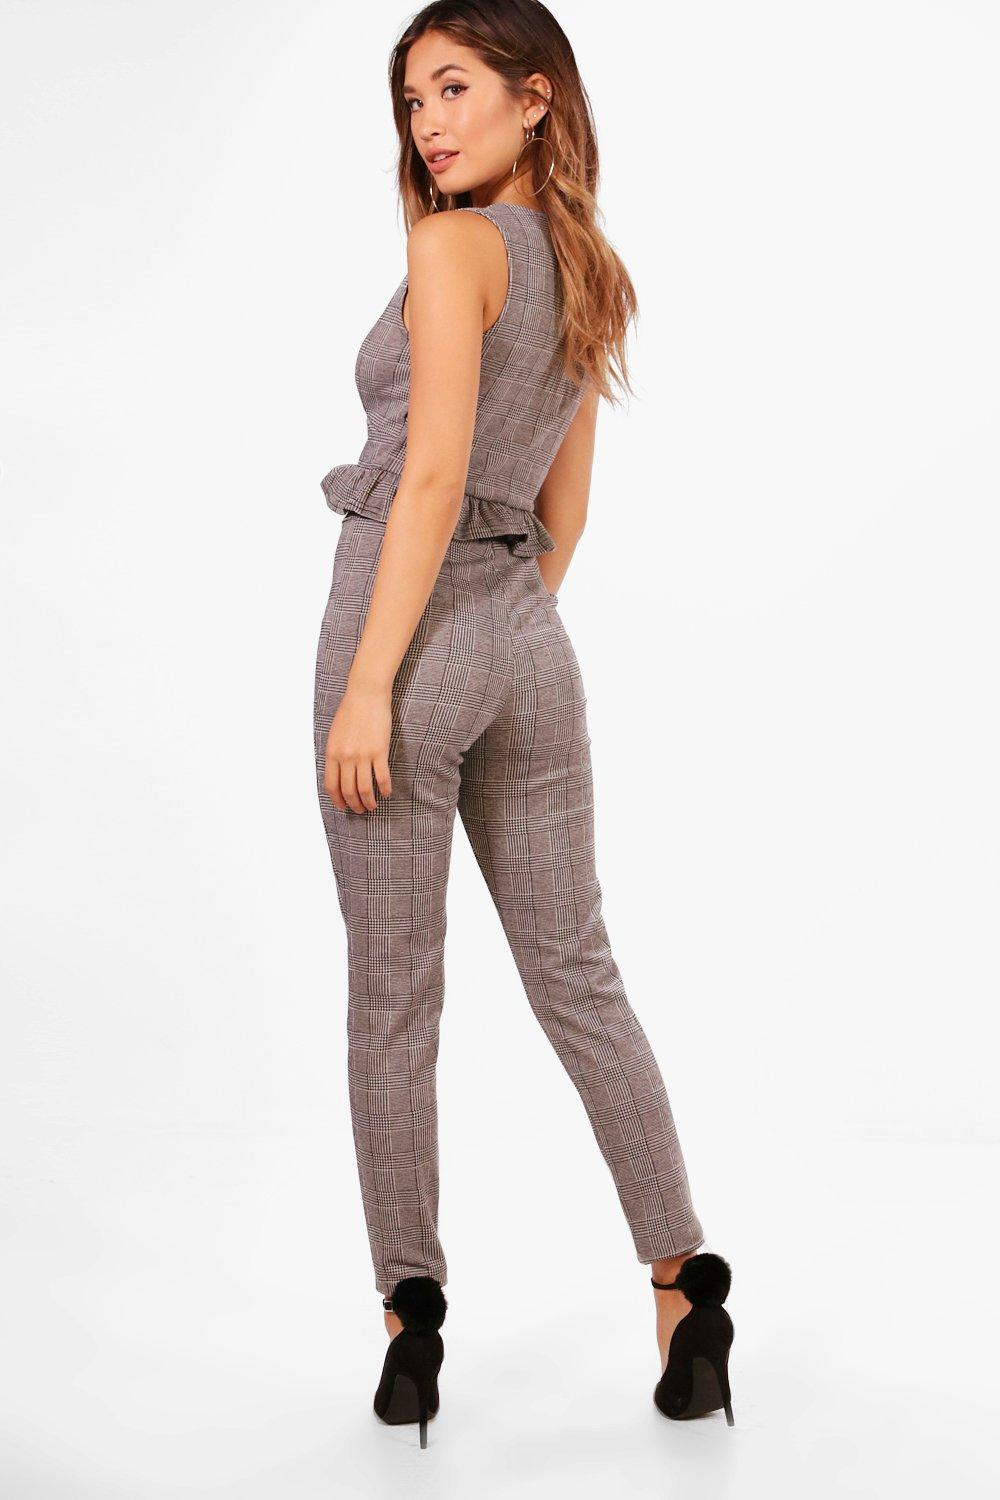 Check Trouser grey Skinny Crop Set and Plunge q7qfCwS